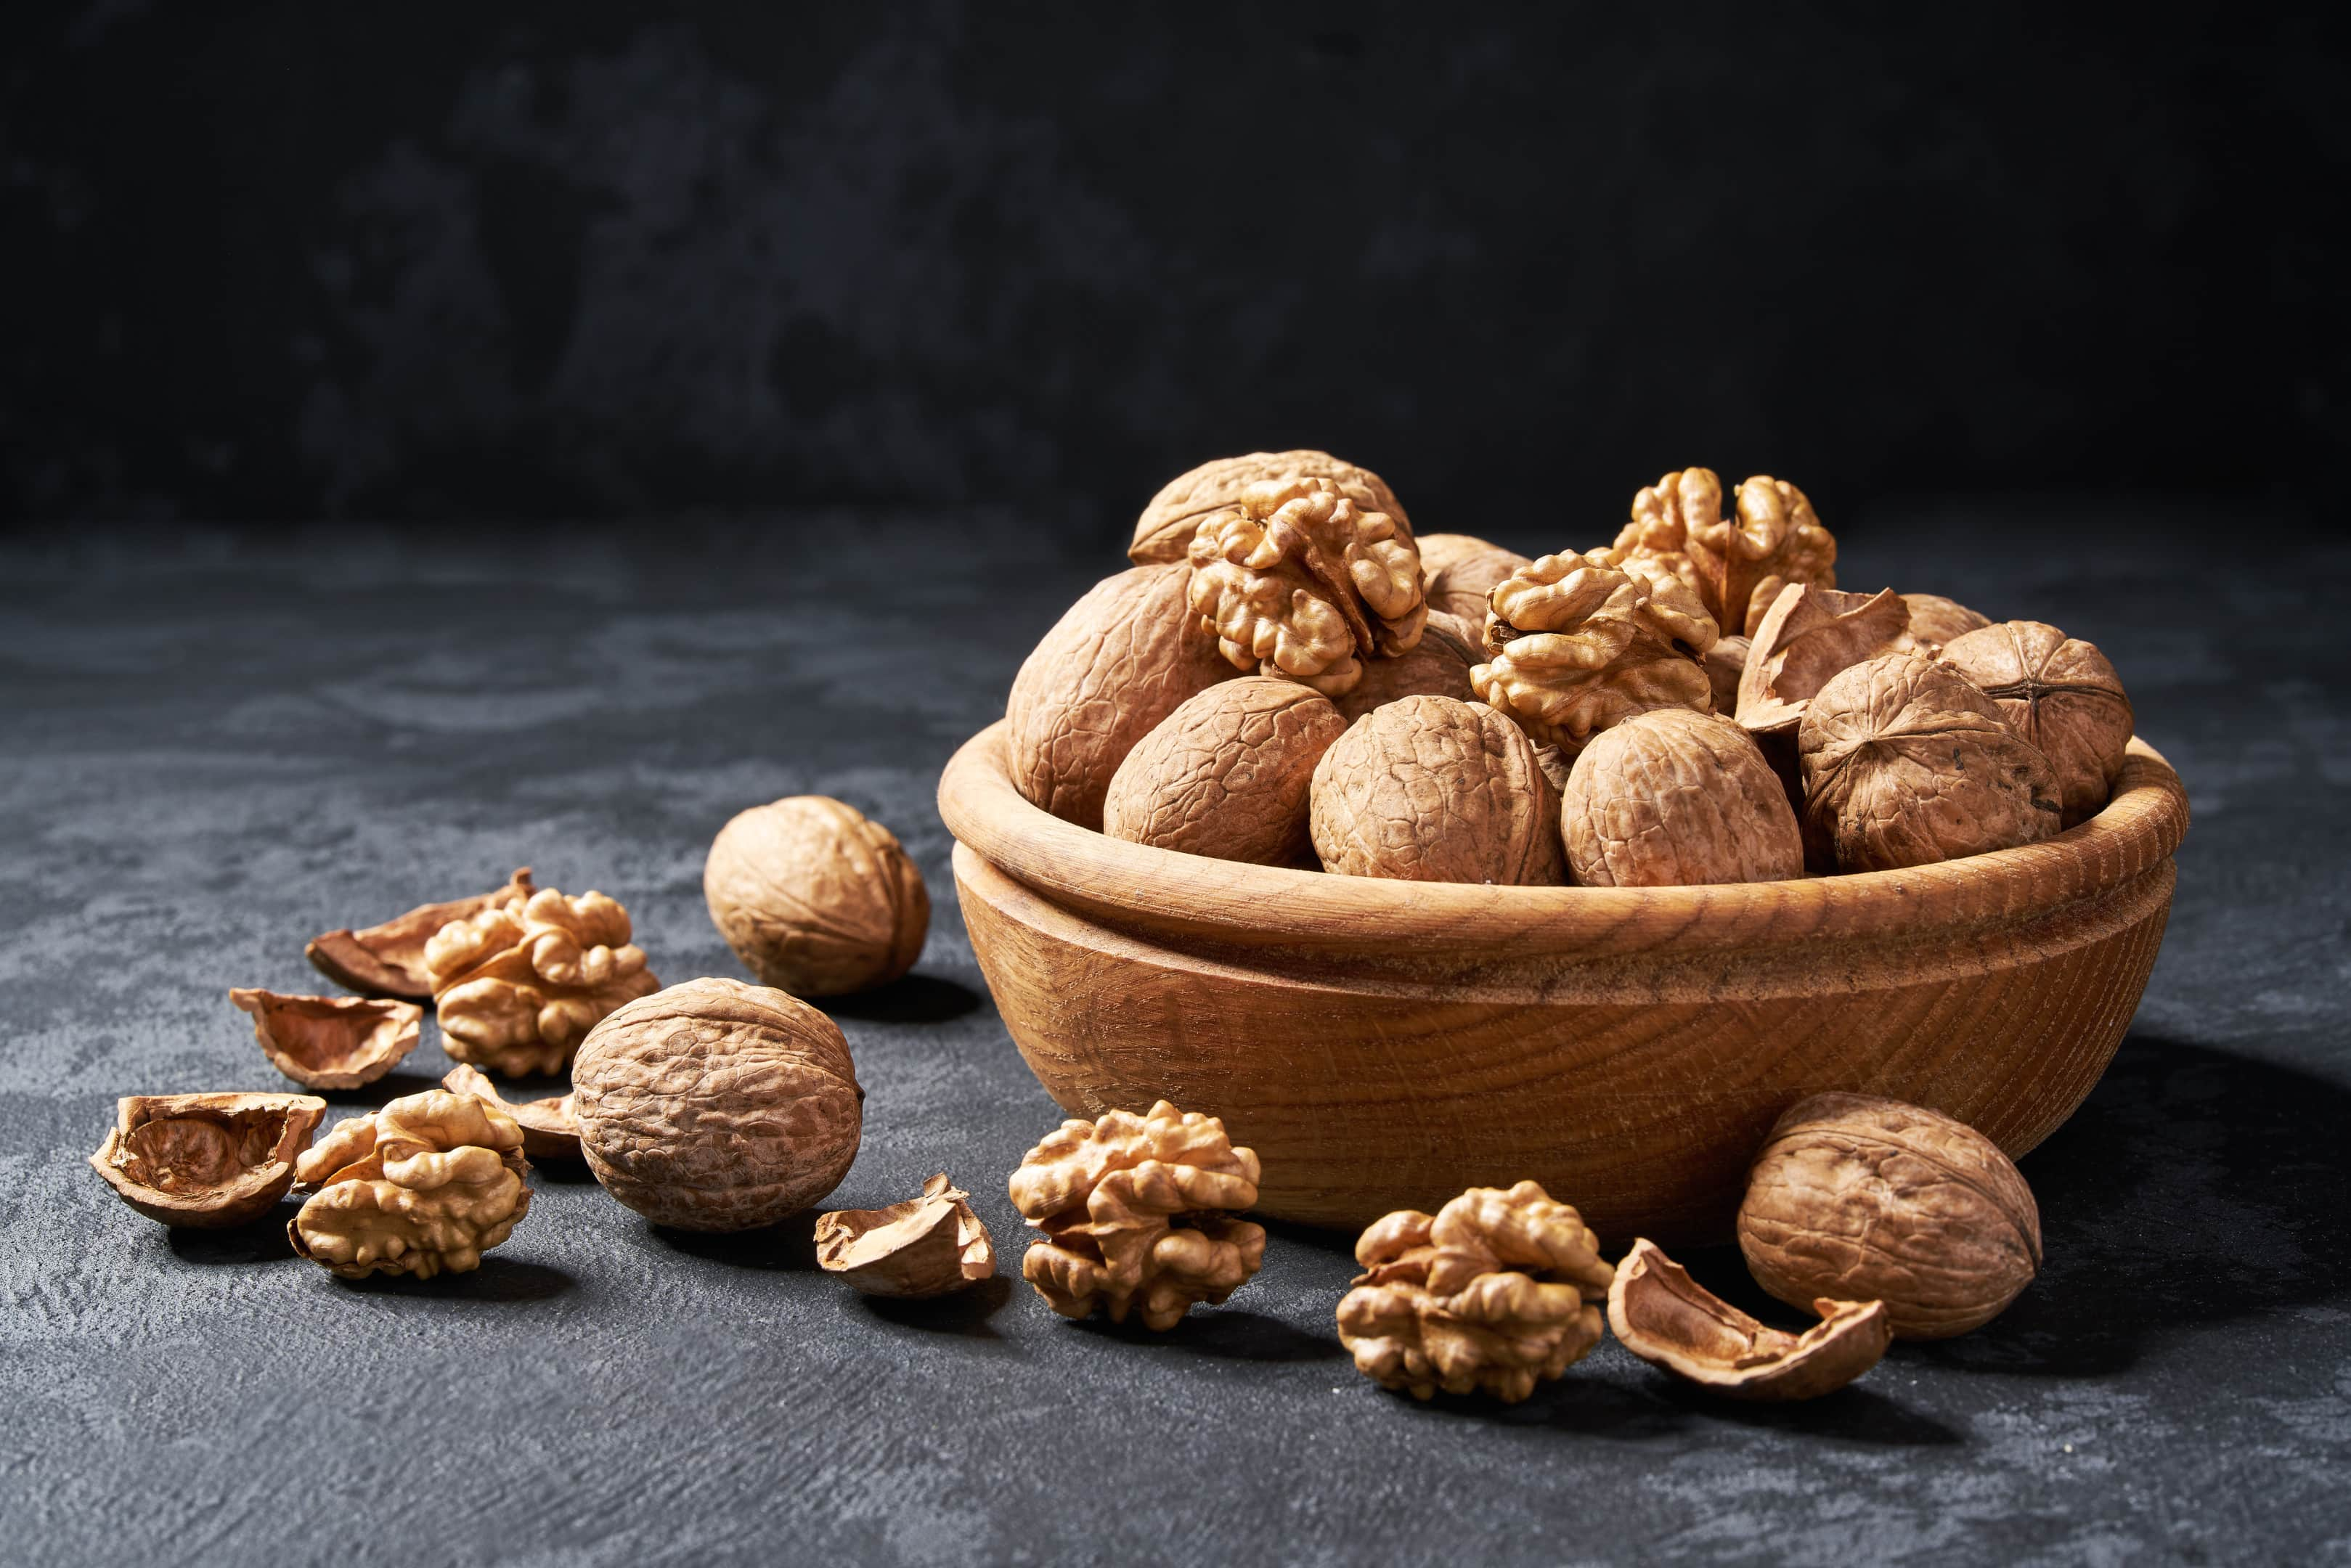 Raw walnuts in wooden bowl on dark table